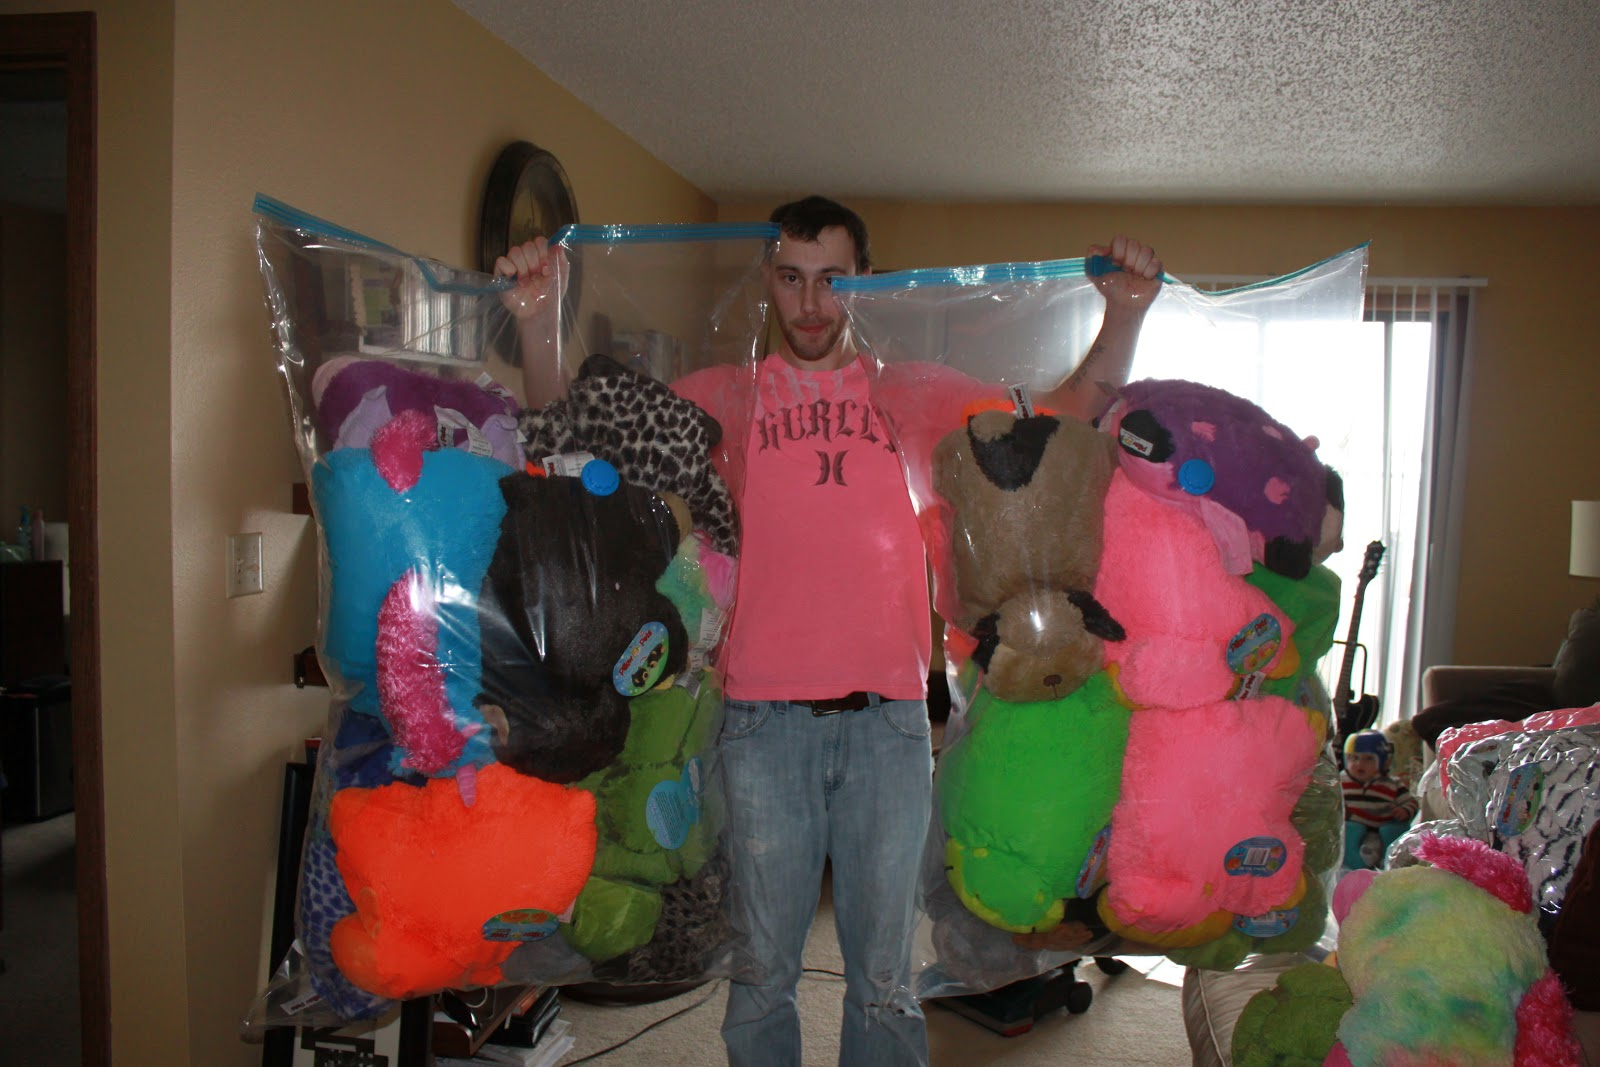 The Jumbo Space Bags Fit About 10 Pillow Pets In Them